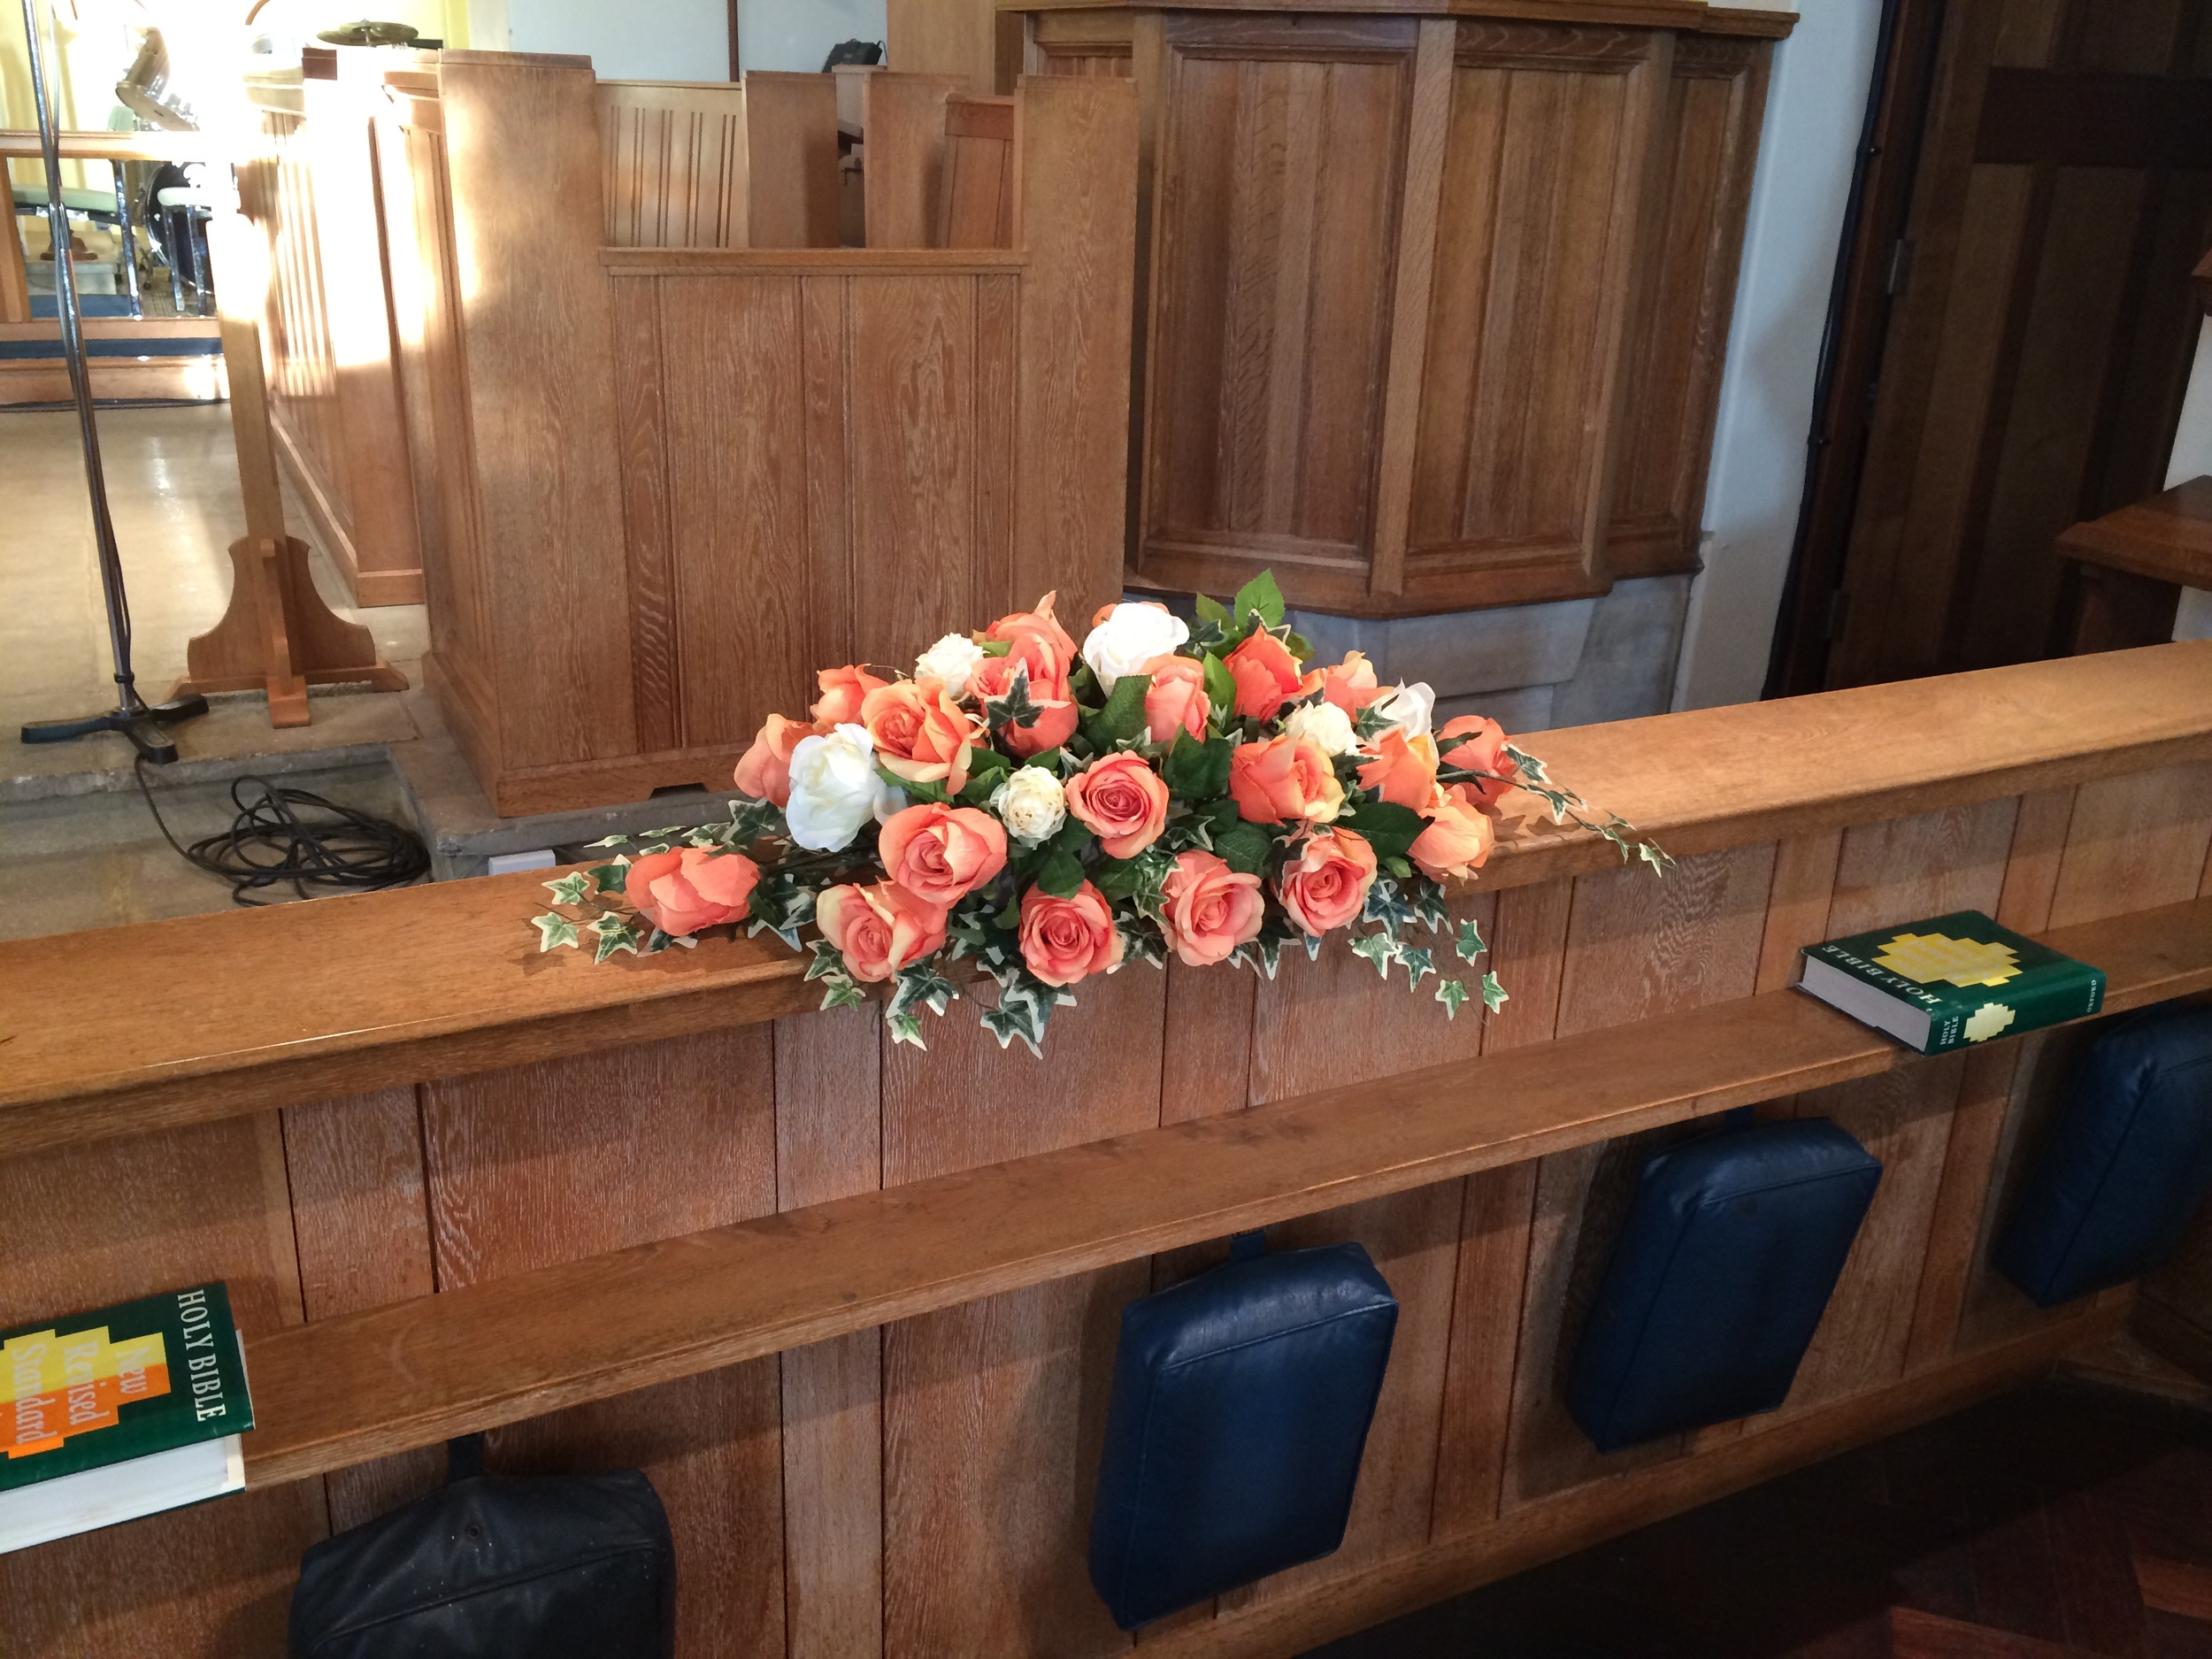 Front Pew Flowers - Peach & Ivory Roses With Ivy